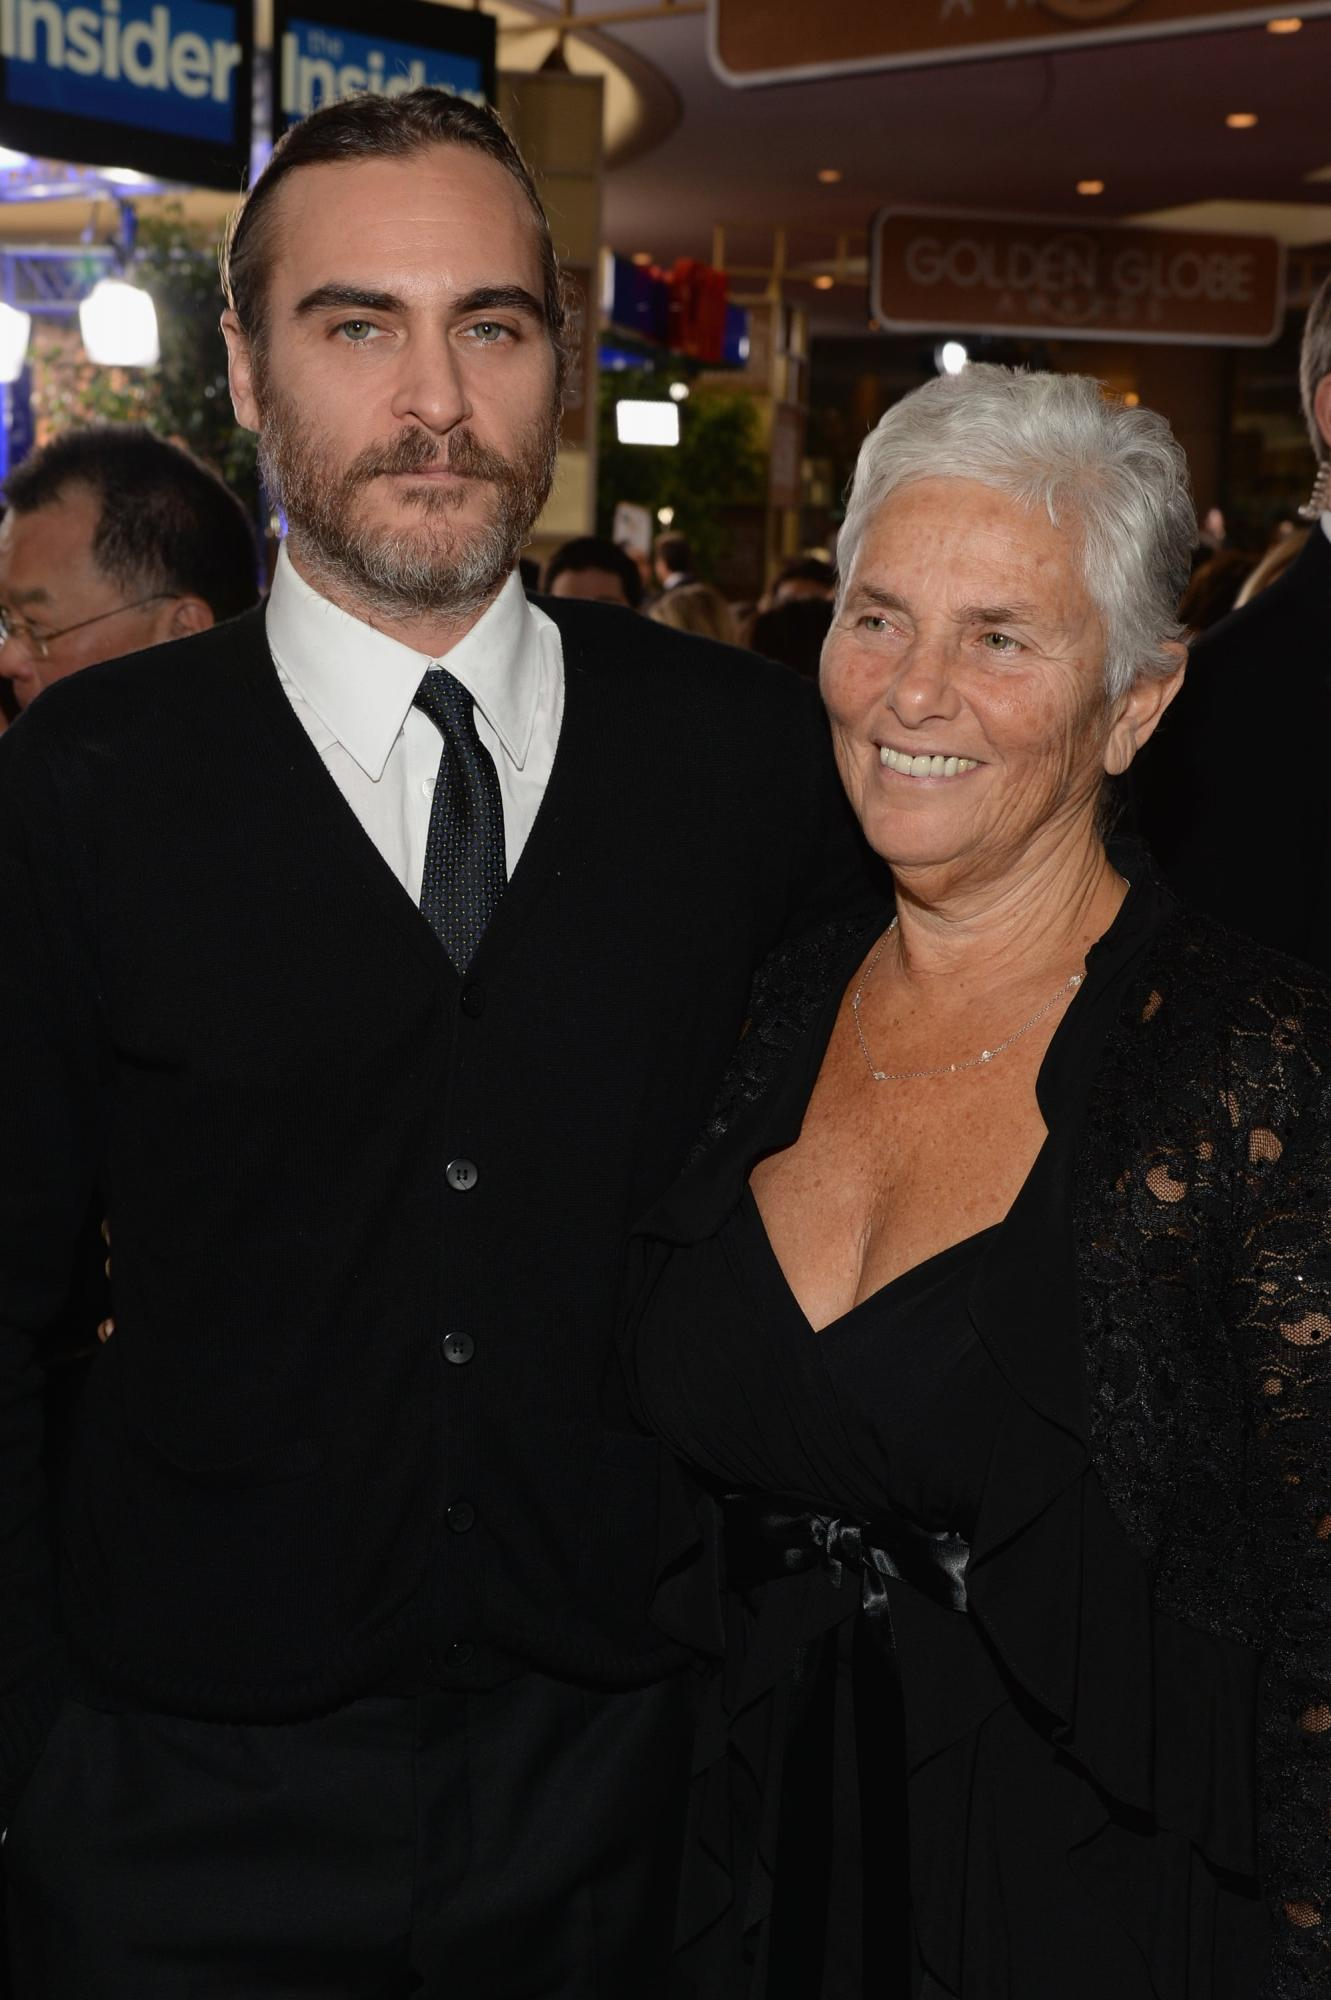 Joaquin Phoenix with his mother Arlyn Phoenix, commonly known as Heart Phoenix